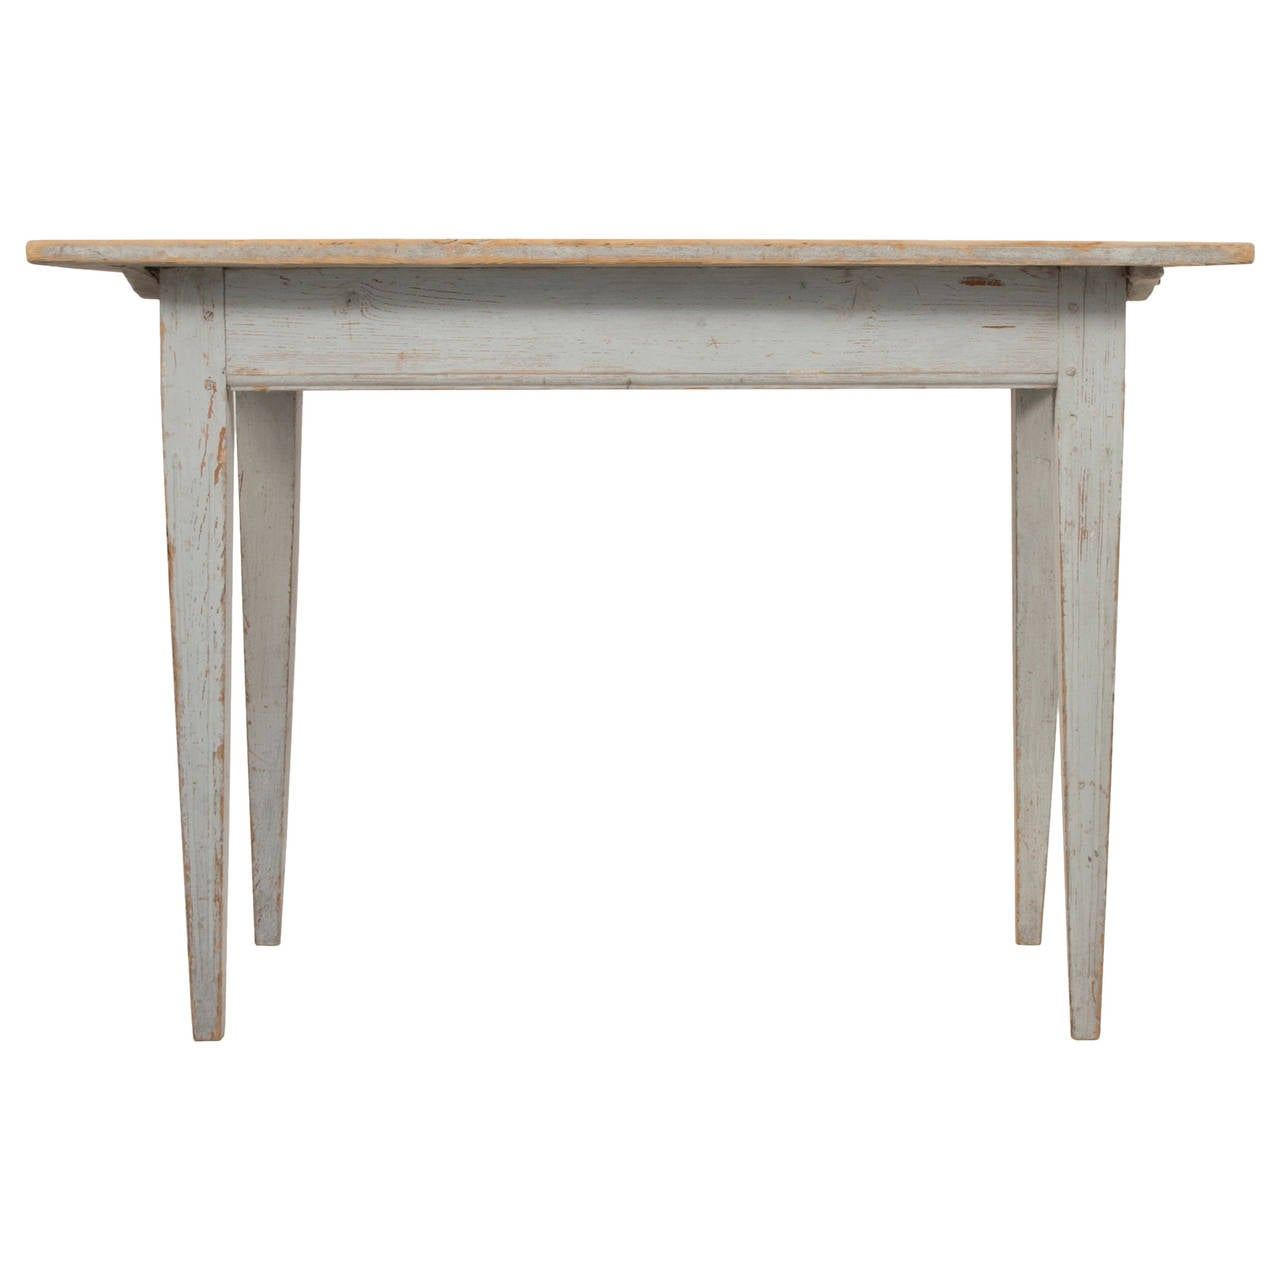 Gustavian table at 1stdibs for Oka gustavian side table